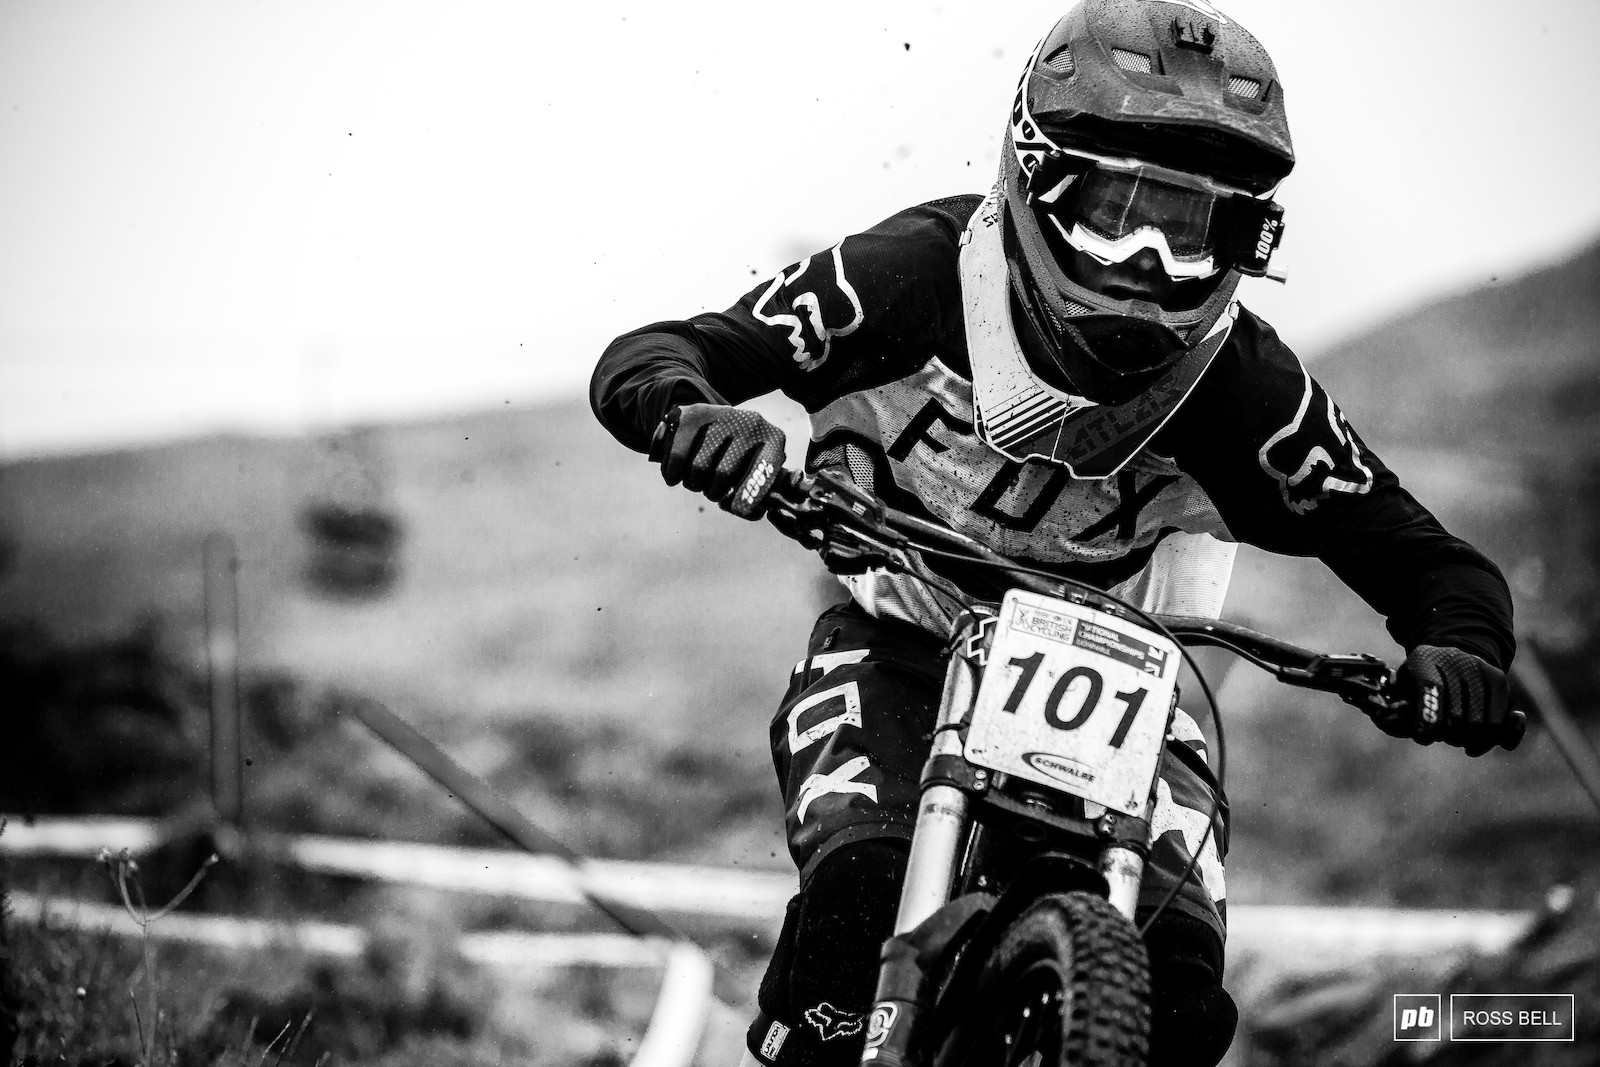 Jordan Williams cutting through the rain and leaving a trail of roost in it s place.